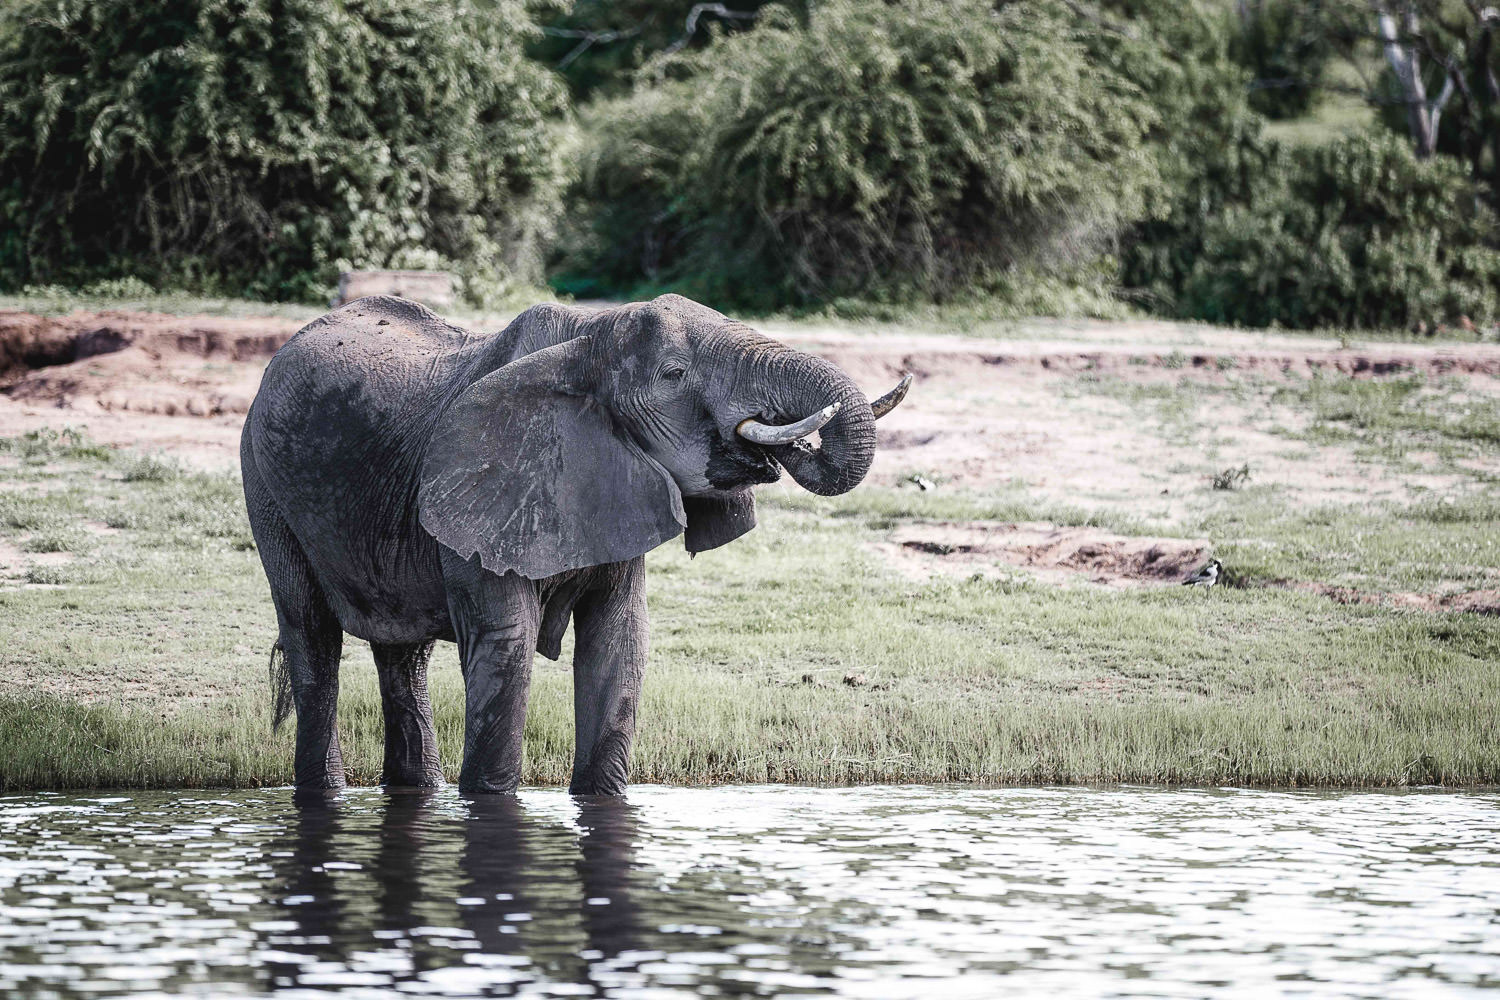 elephant drinking water in chobe national park during Christmas safari tour